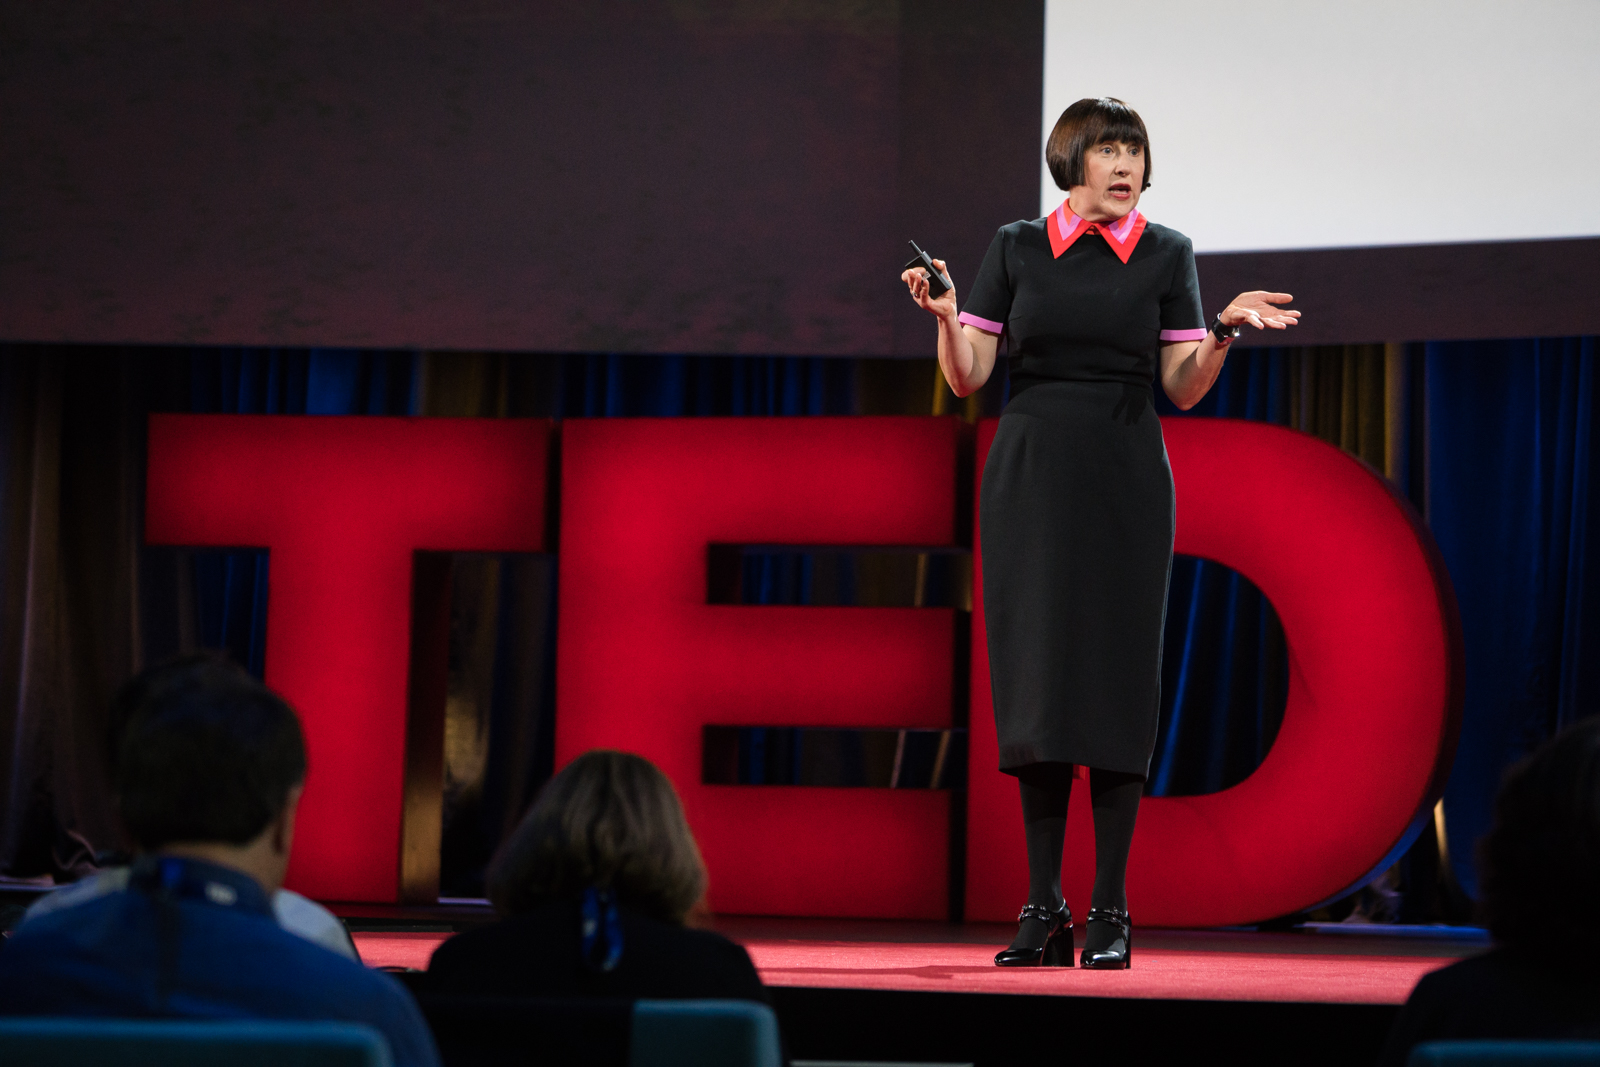 Alice Rawsthorn speaks at TED2016 - Dream, February 15-19, 2016, Vancouver Convention Center, Vancouver, Canada. Photo: Bret Hartman / TED